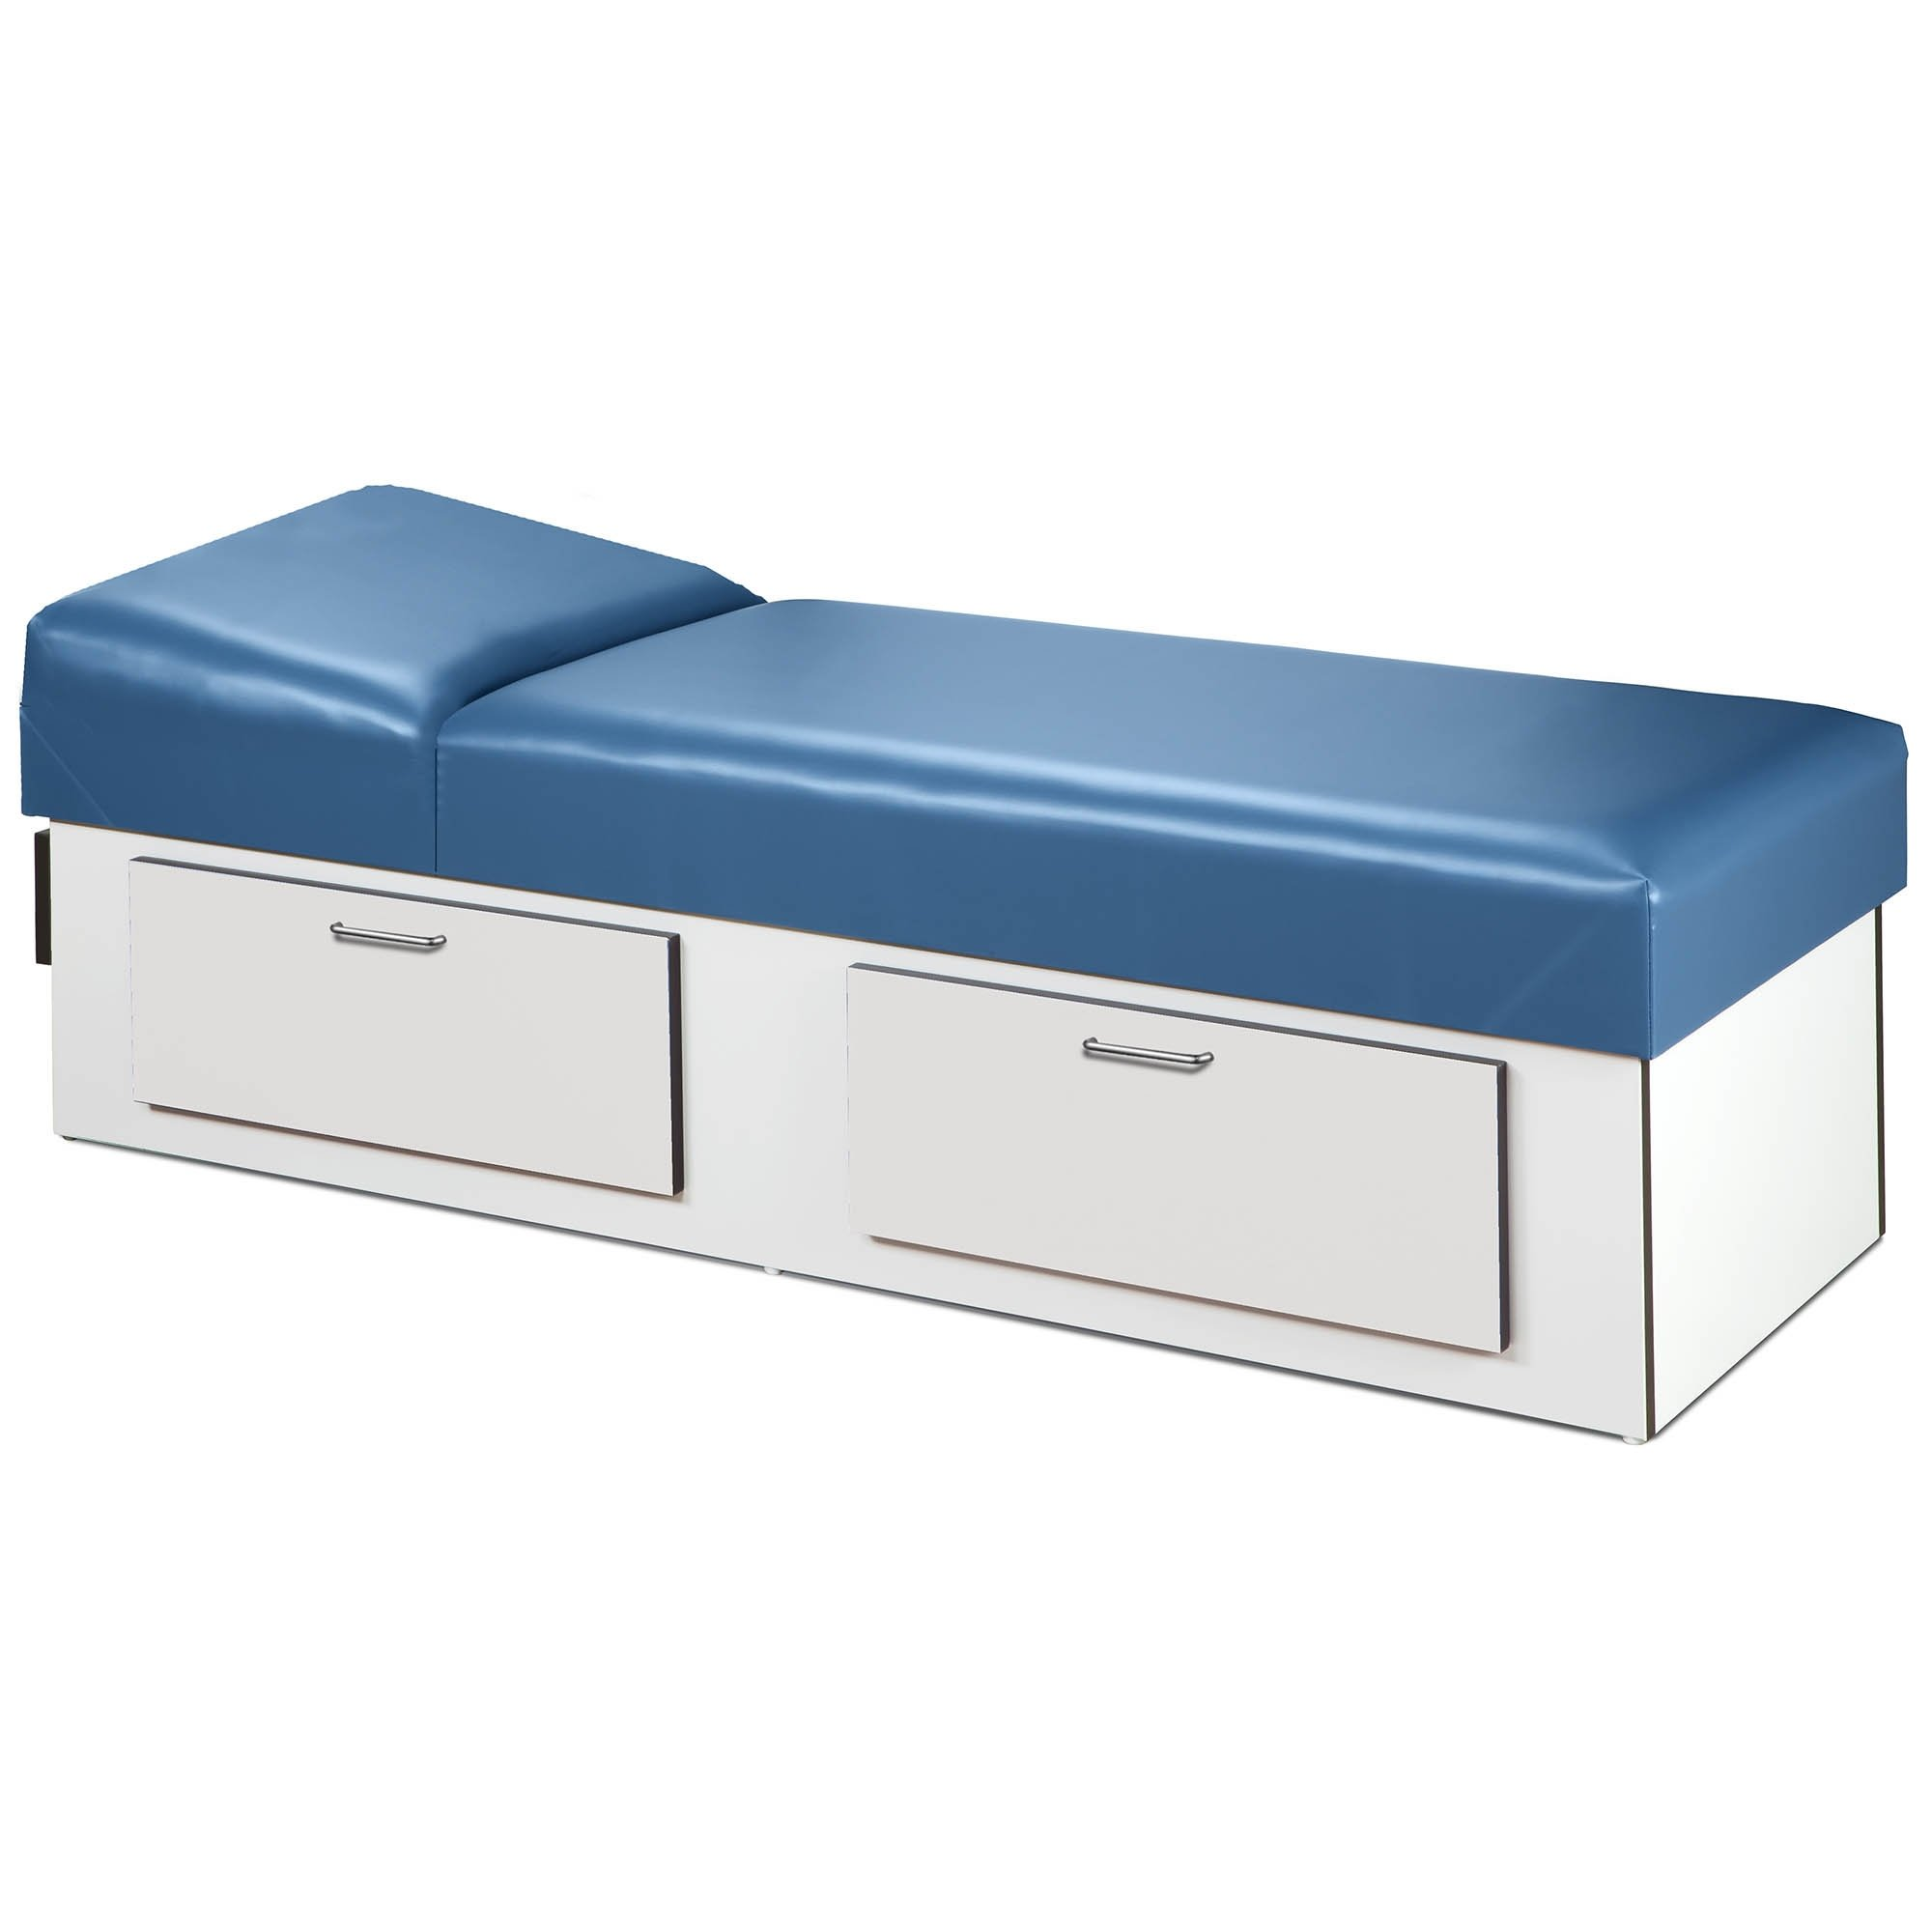 Clinton 3713 10 Two Drawer Recovery Couch Non Adjustable Pillow Wedge